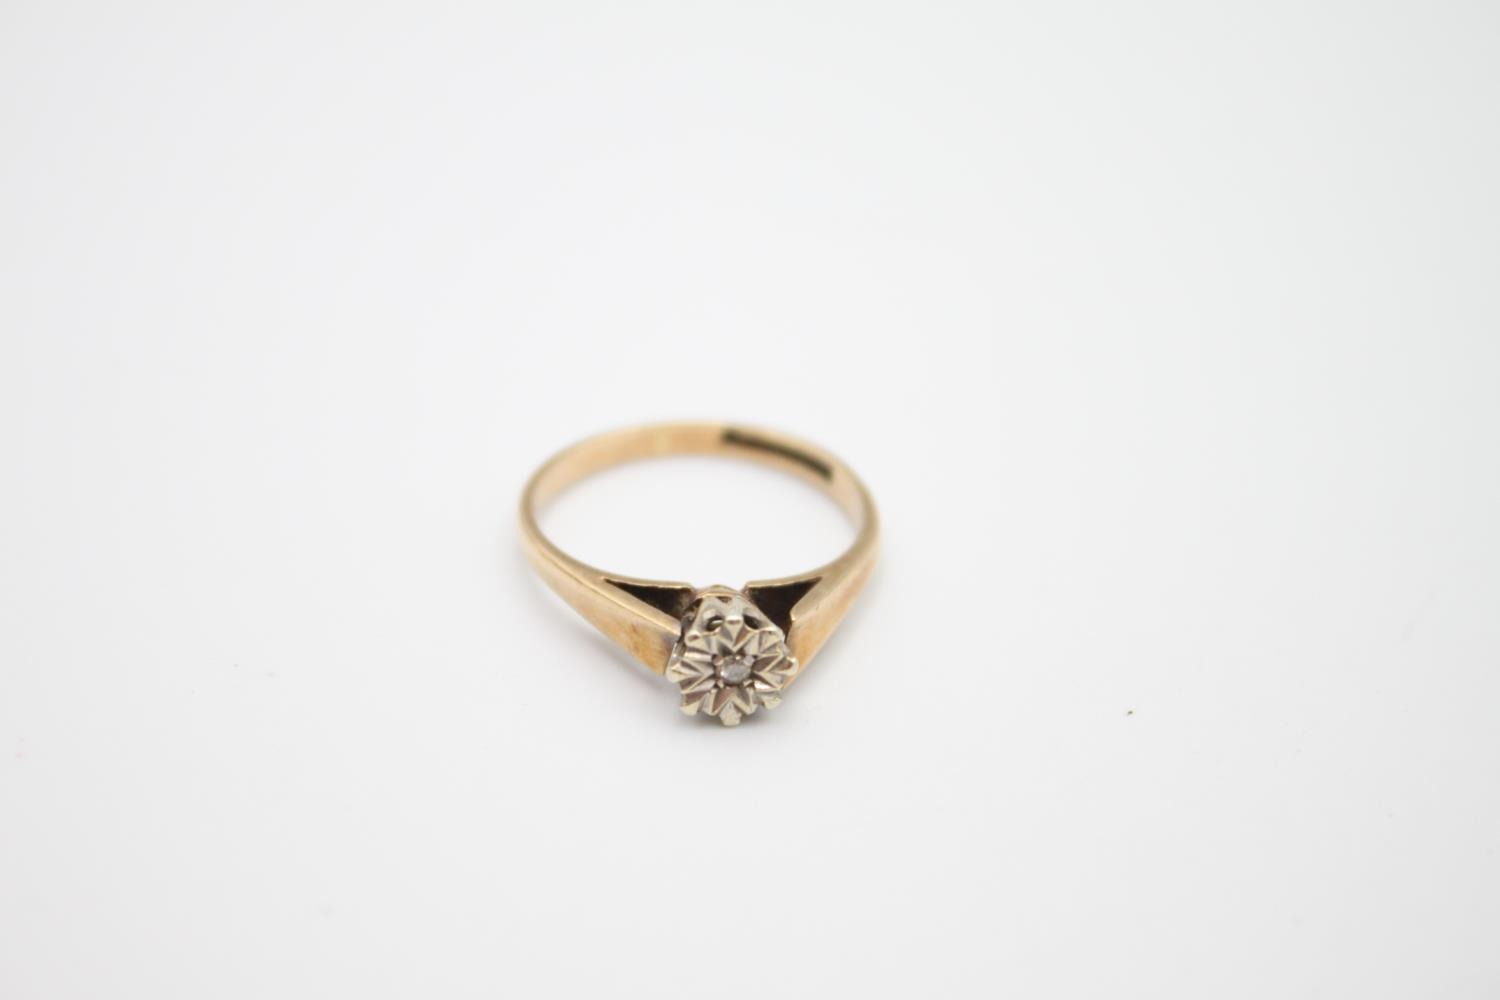 2 x 9ct gold diamond solitaire rings 3.6g Size M on left & H on right - Image 4 of 5